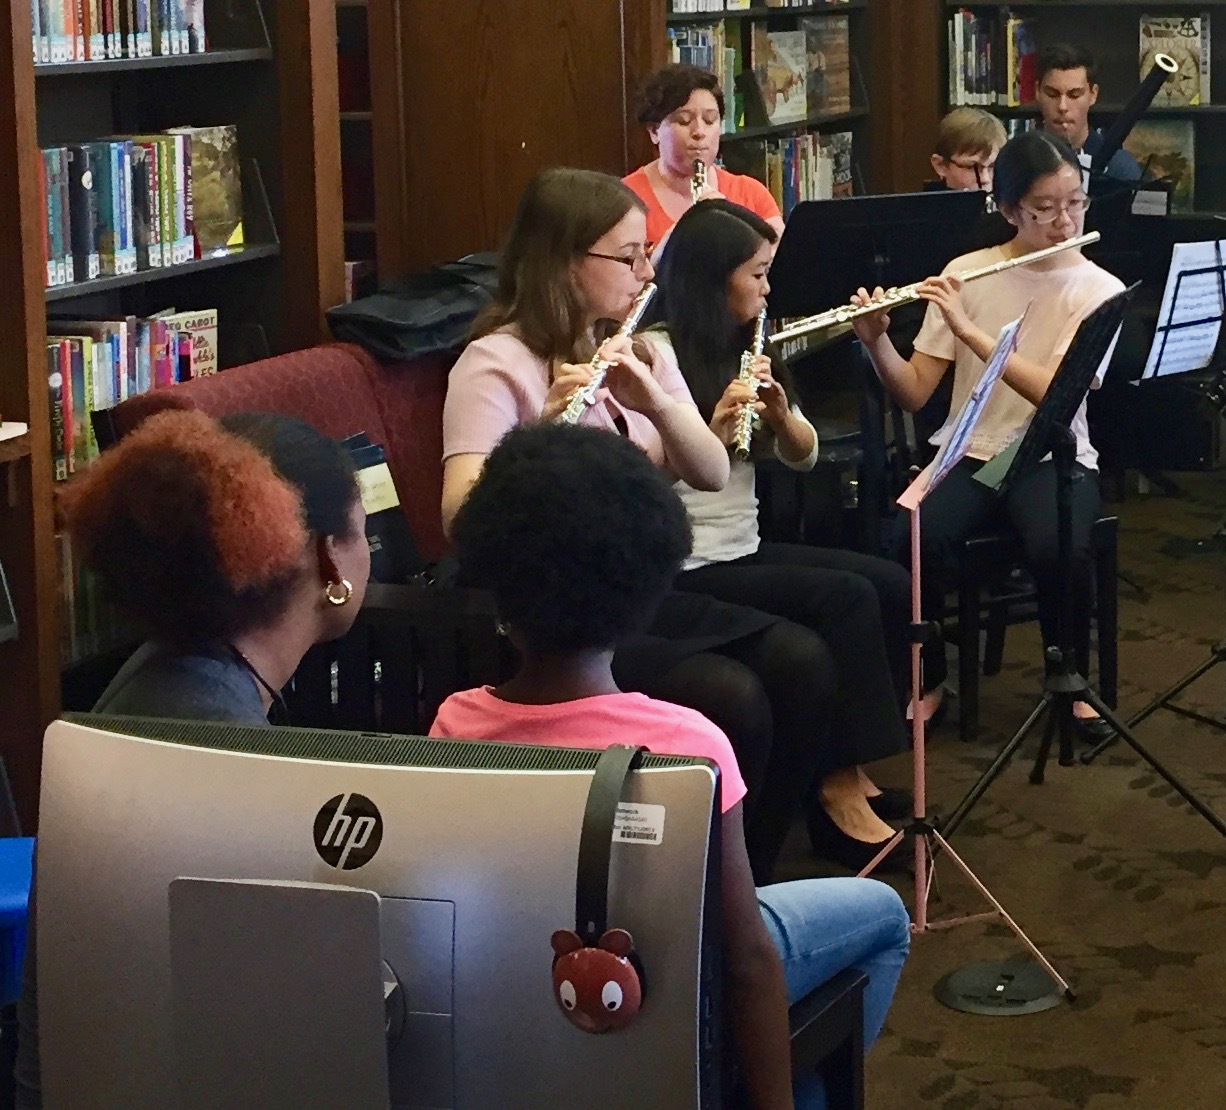 Pop-Up Concerts in Carnegie Libraries - Lawrenceville Library: Sat., Sept. 22 - 12:15pmHomewood Library: Sat., Sept. 22 - 12:15pmEast Liberty Library: Sat., Sept. 22 - 2:45pmWest End Library: Sat., Sept. 22 - 2:45pm